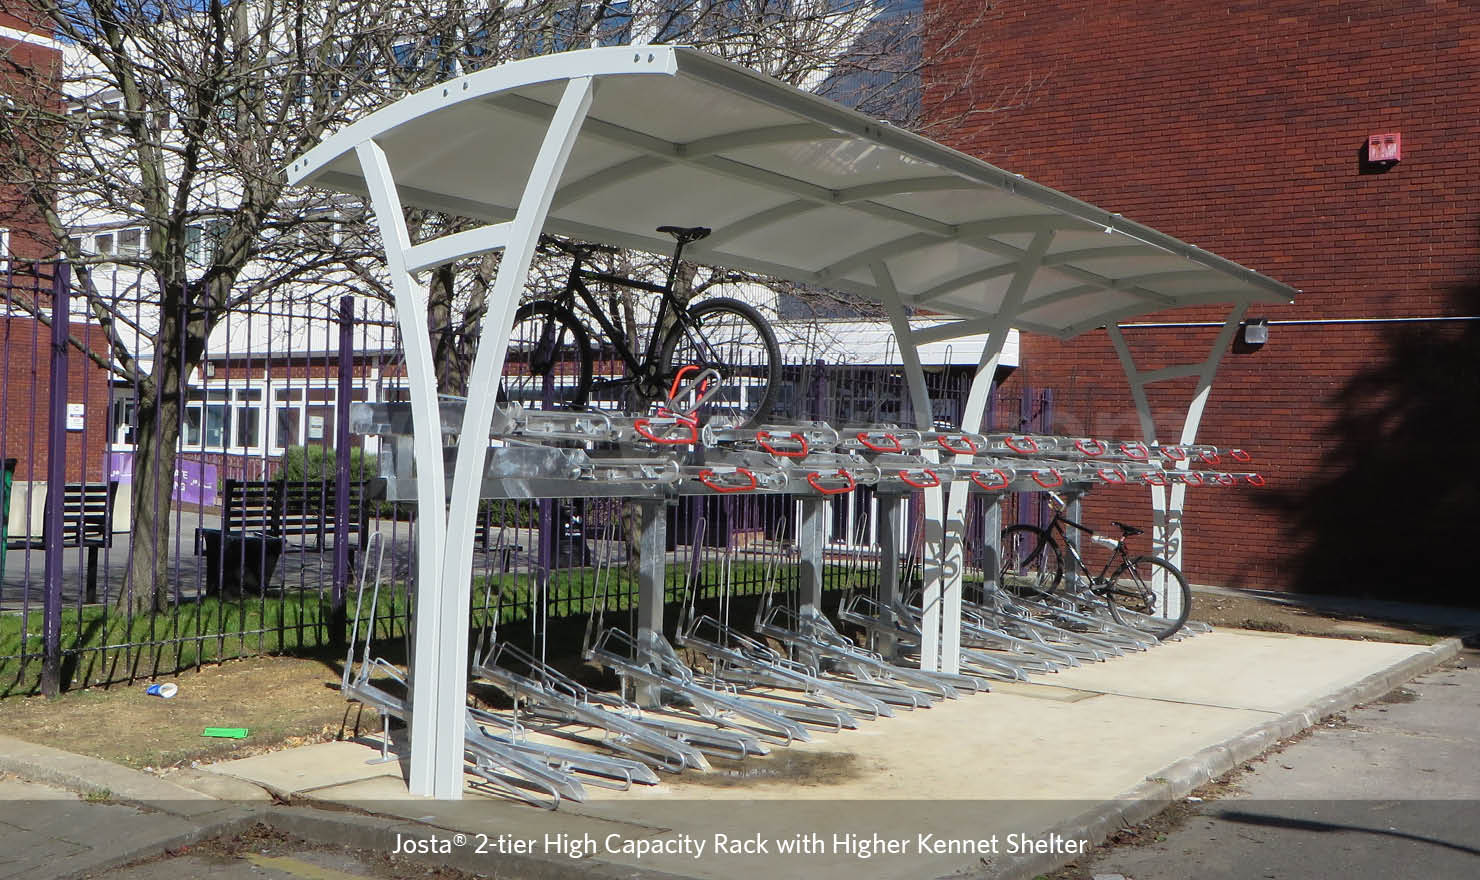 Josta 2-tier cycle parking system under a Kennet shelter